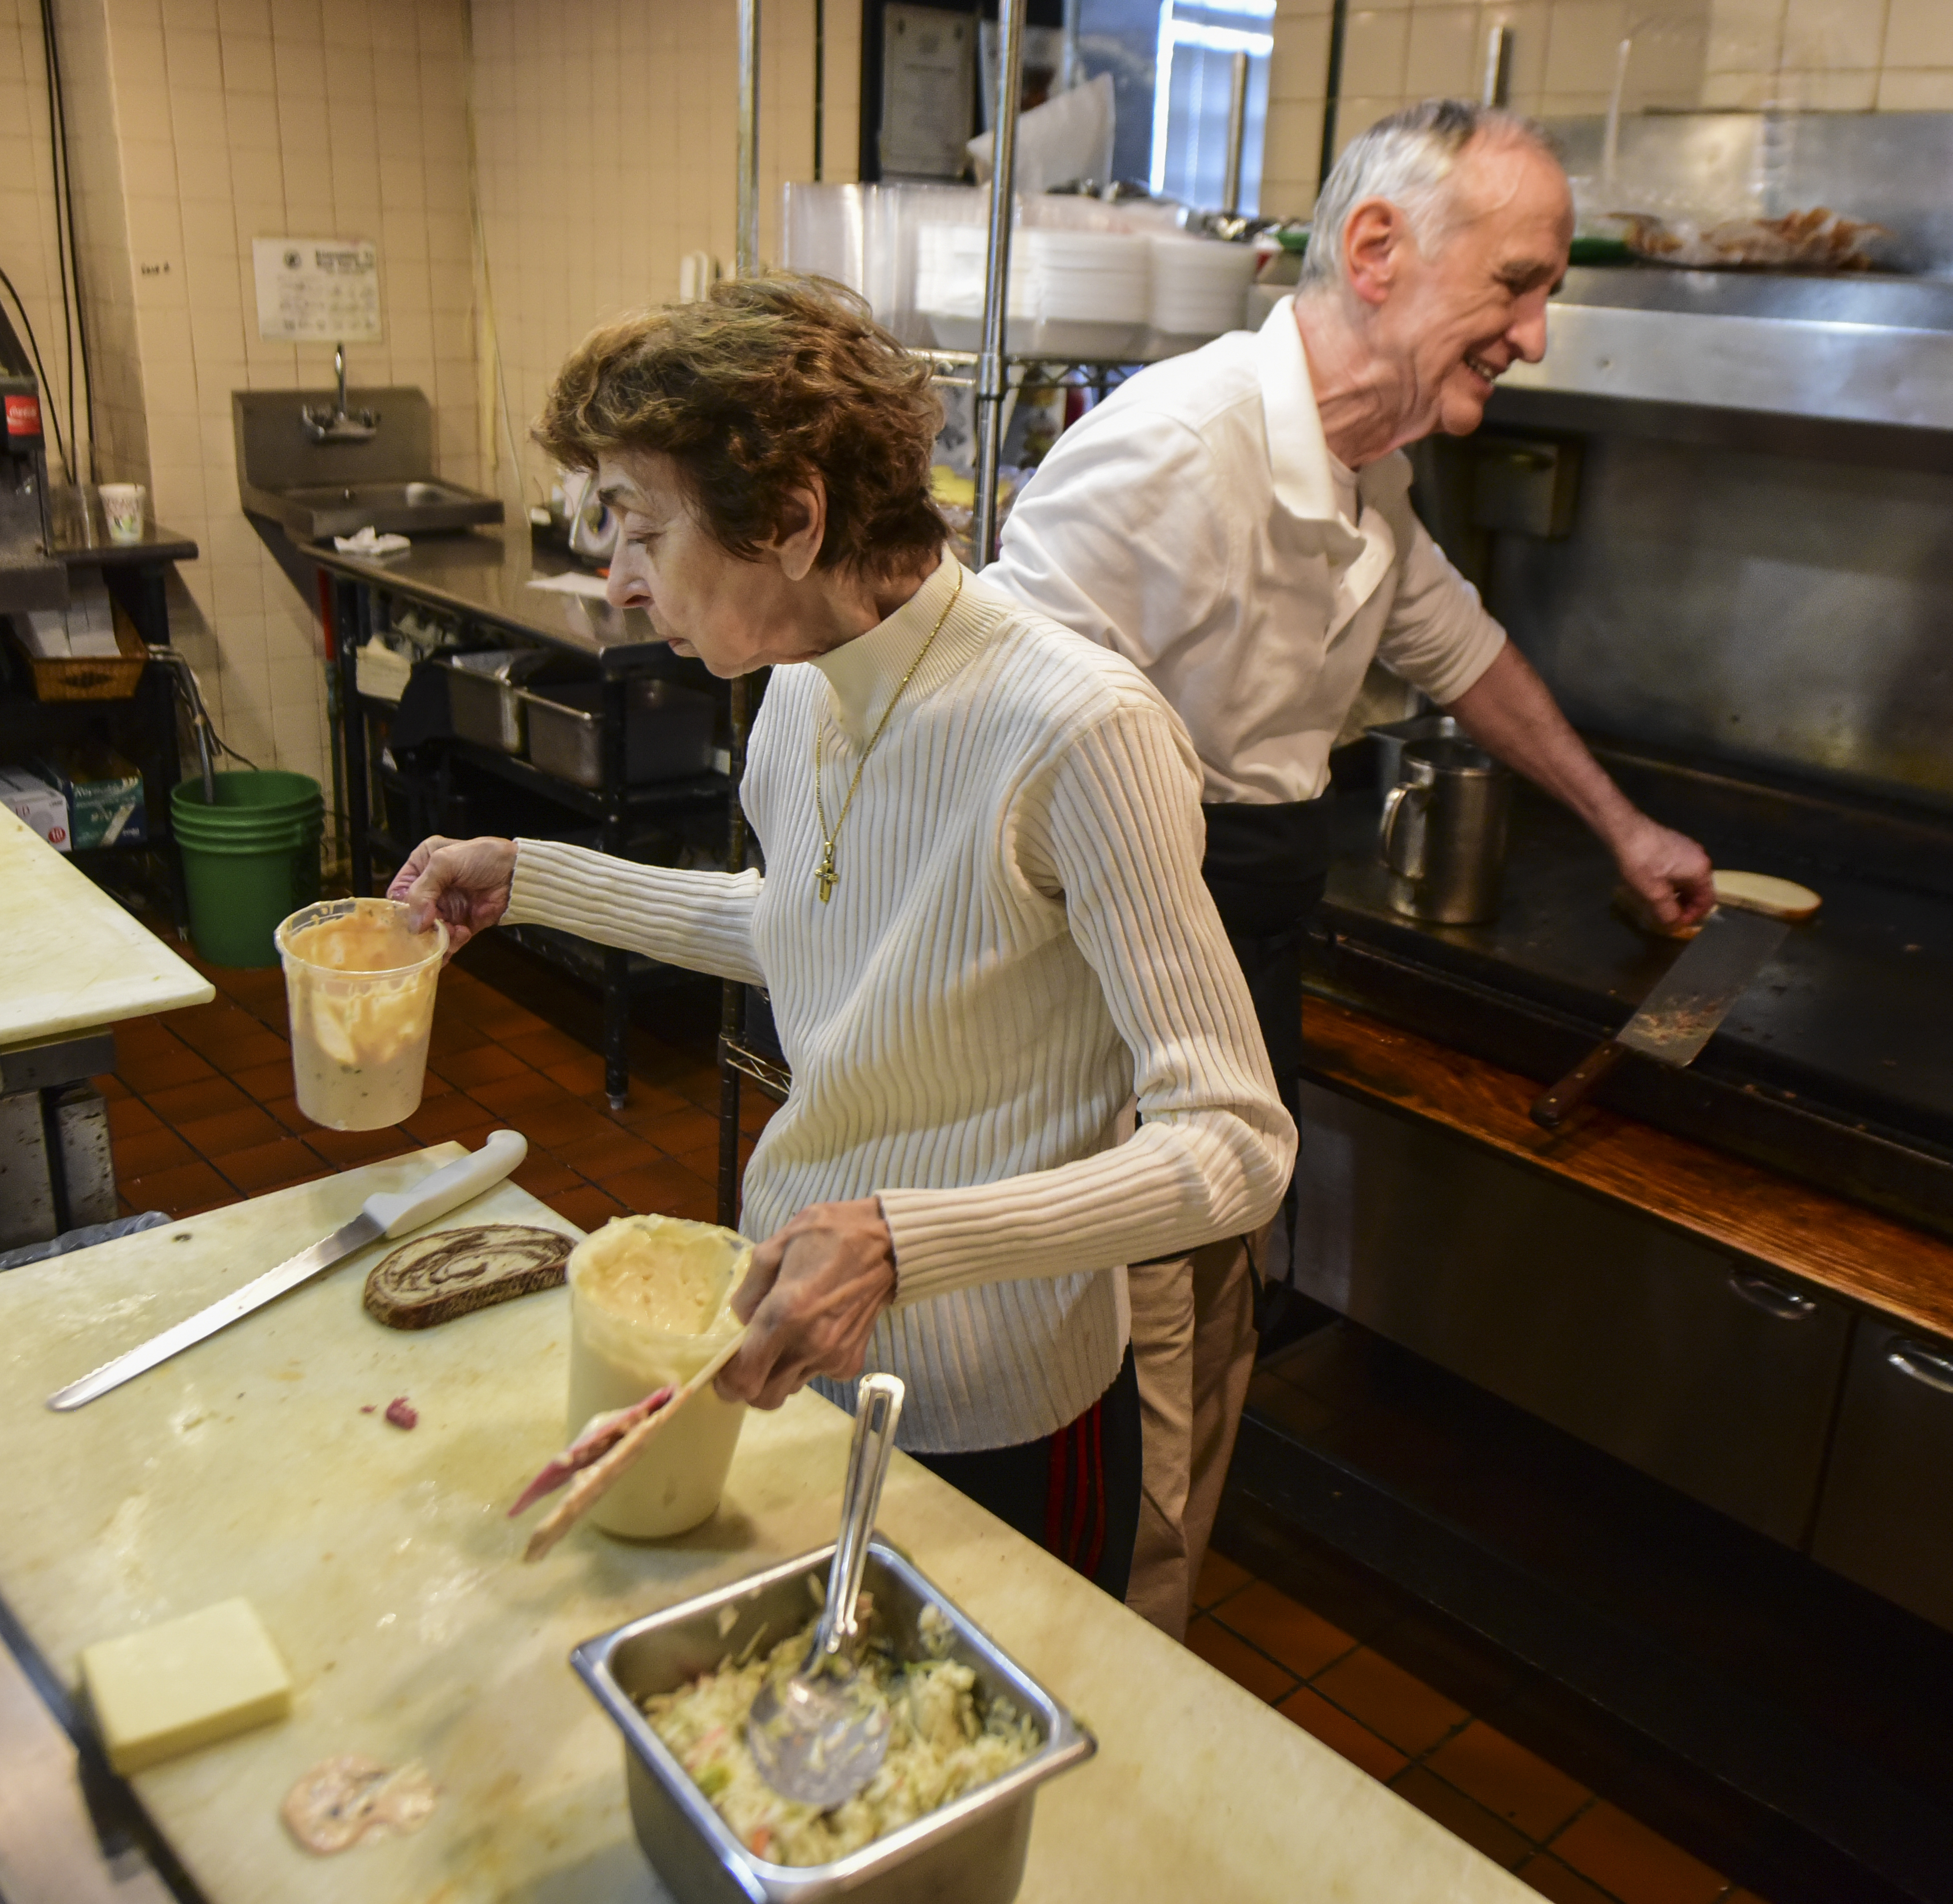 Jim Landis, 79, and his sister Renee Platt, 85, who have been working side-by-side for 50 years in Wayne´s Landis Restaurant & Catering, have decided to retire, hoping someone will step up to keep their Main Line eatery going.